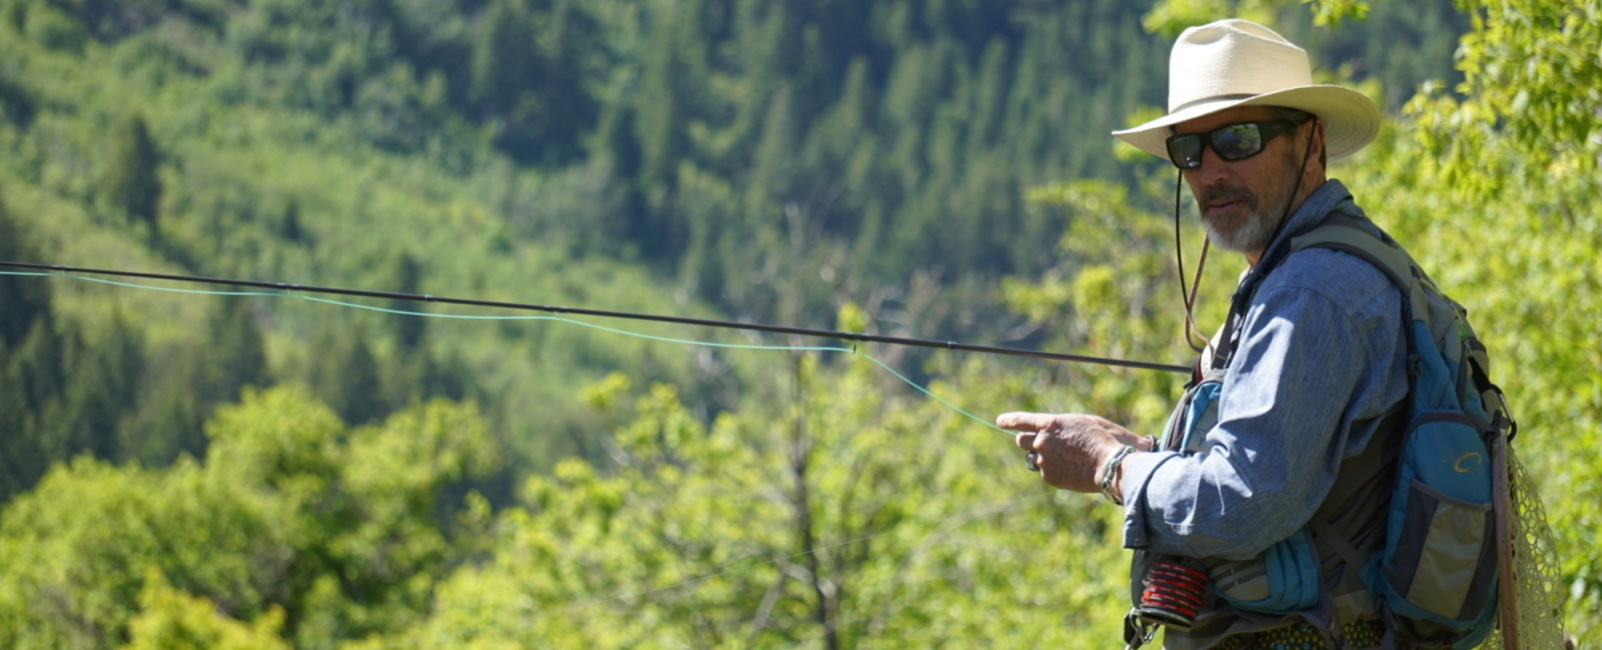 5 Spots for Hikeable Fast and Light Fly Fishing in the High Uintas